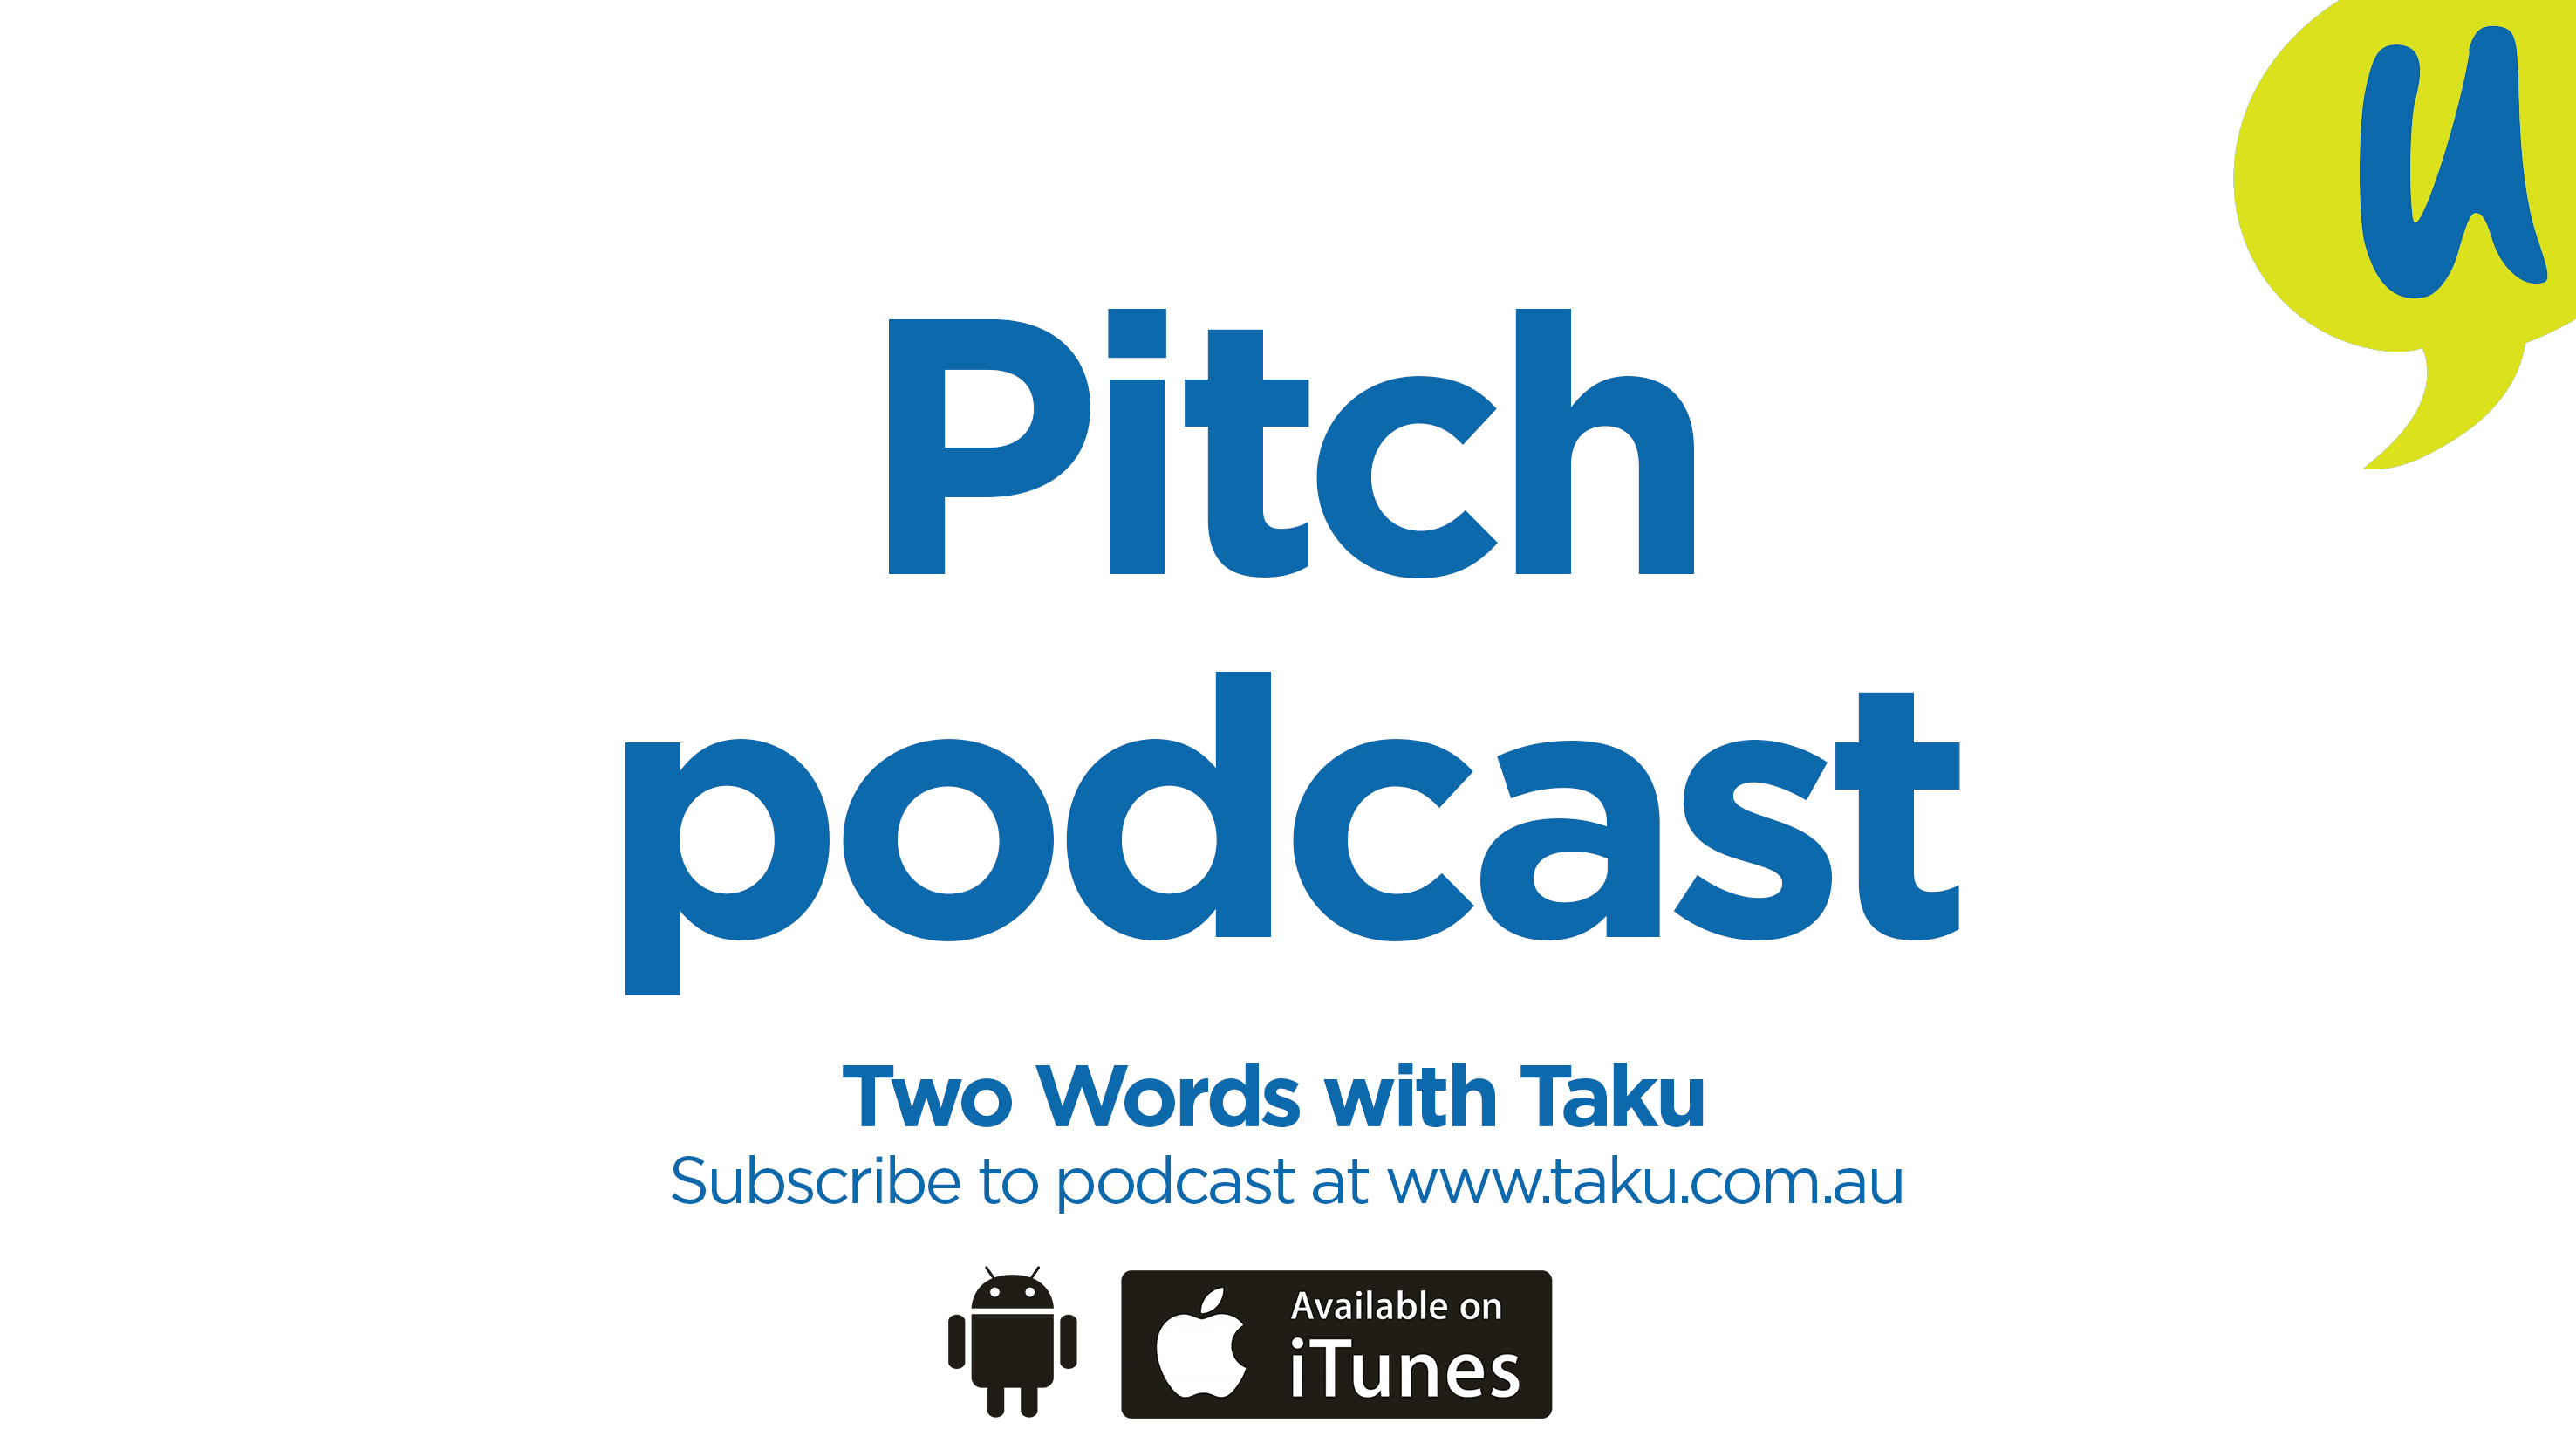 Pitch Podcast Nova Podquest Australia ACast